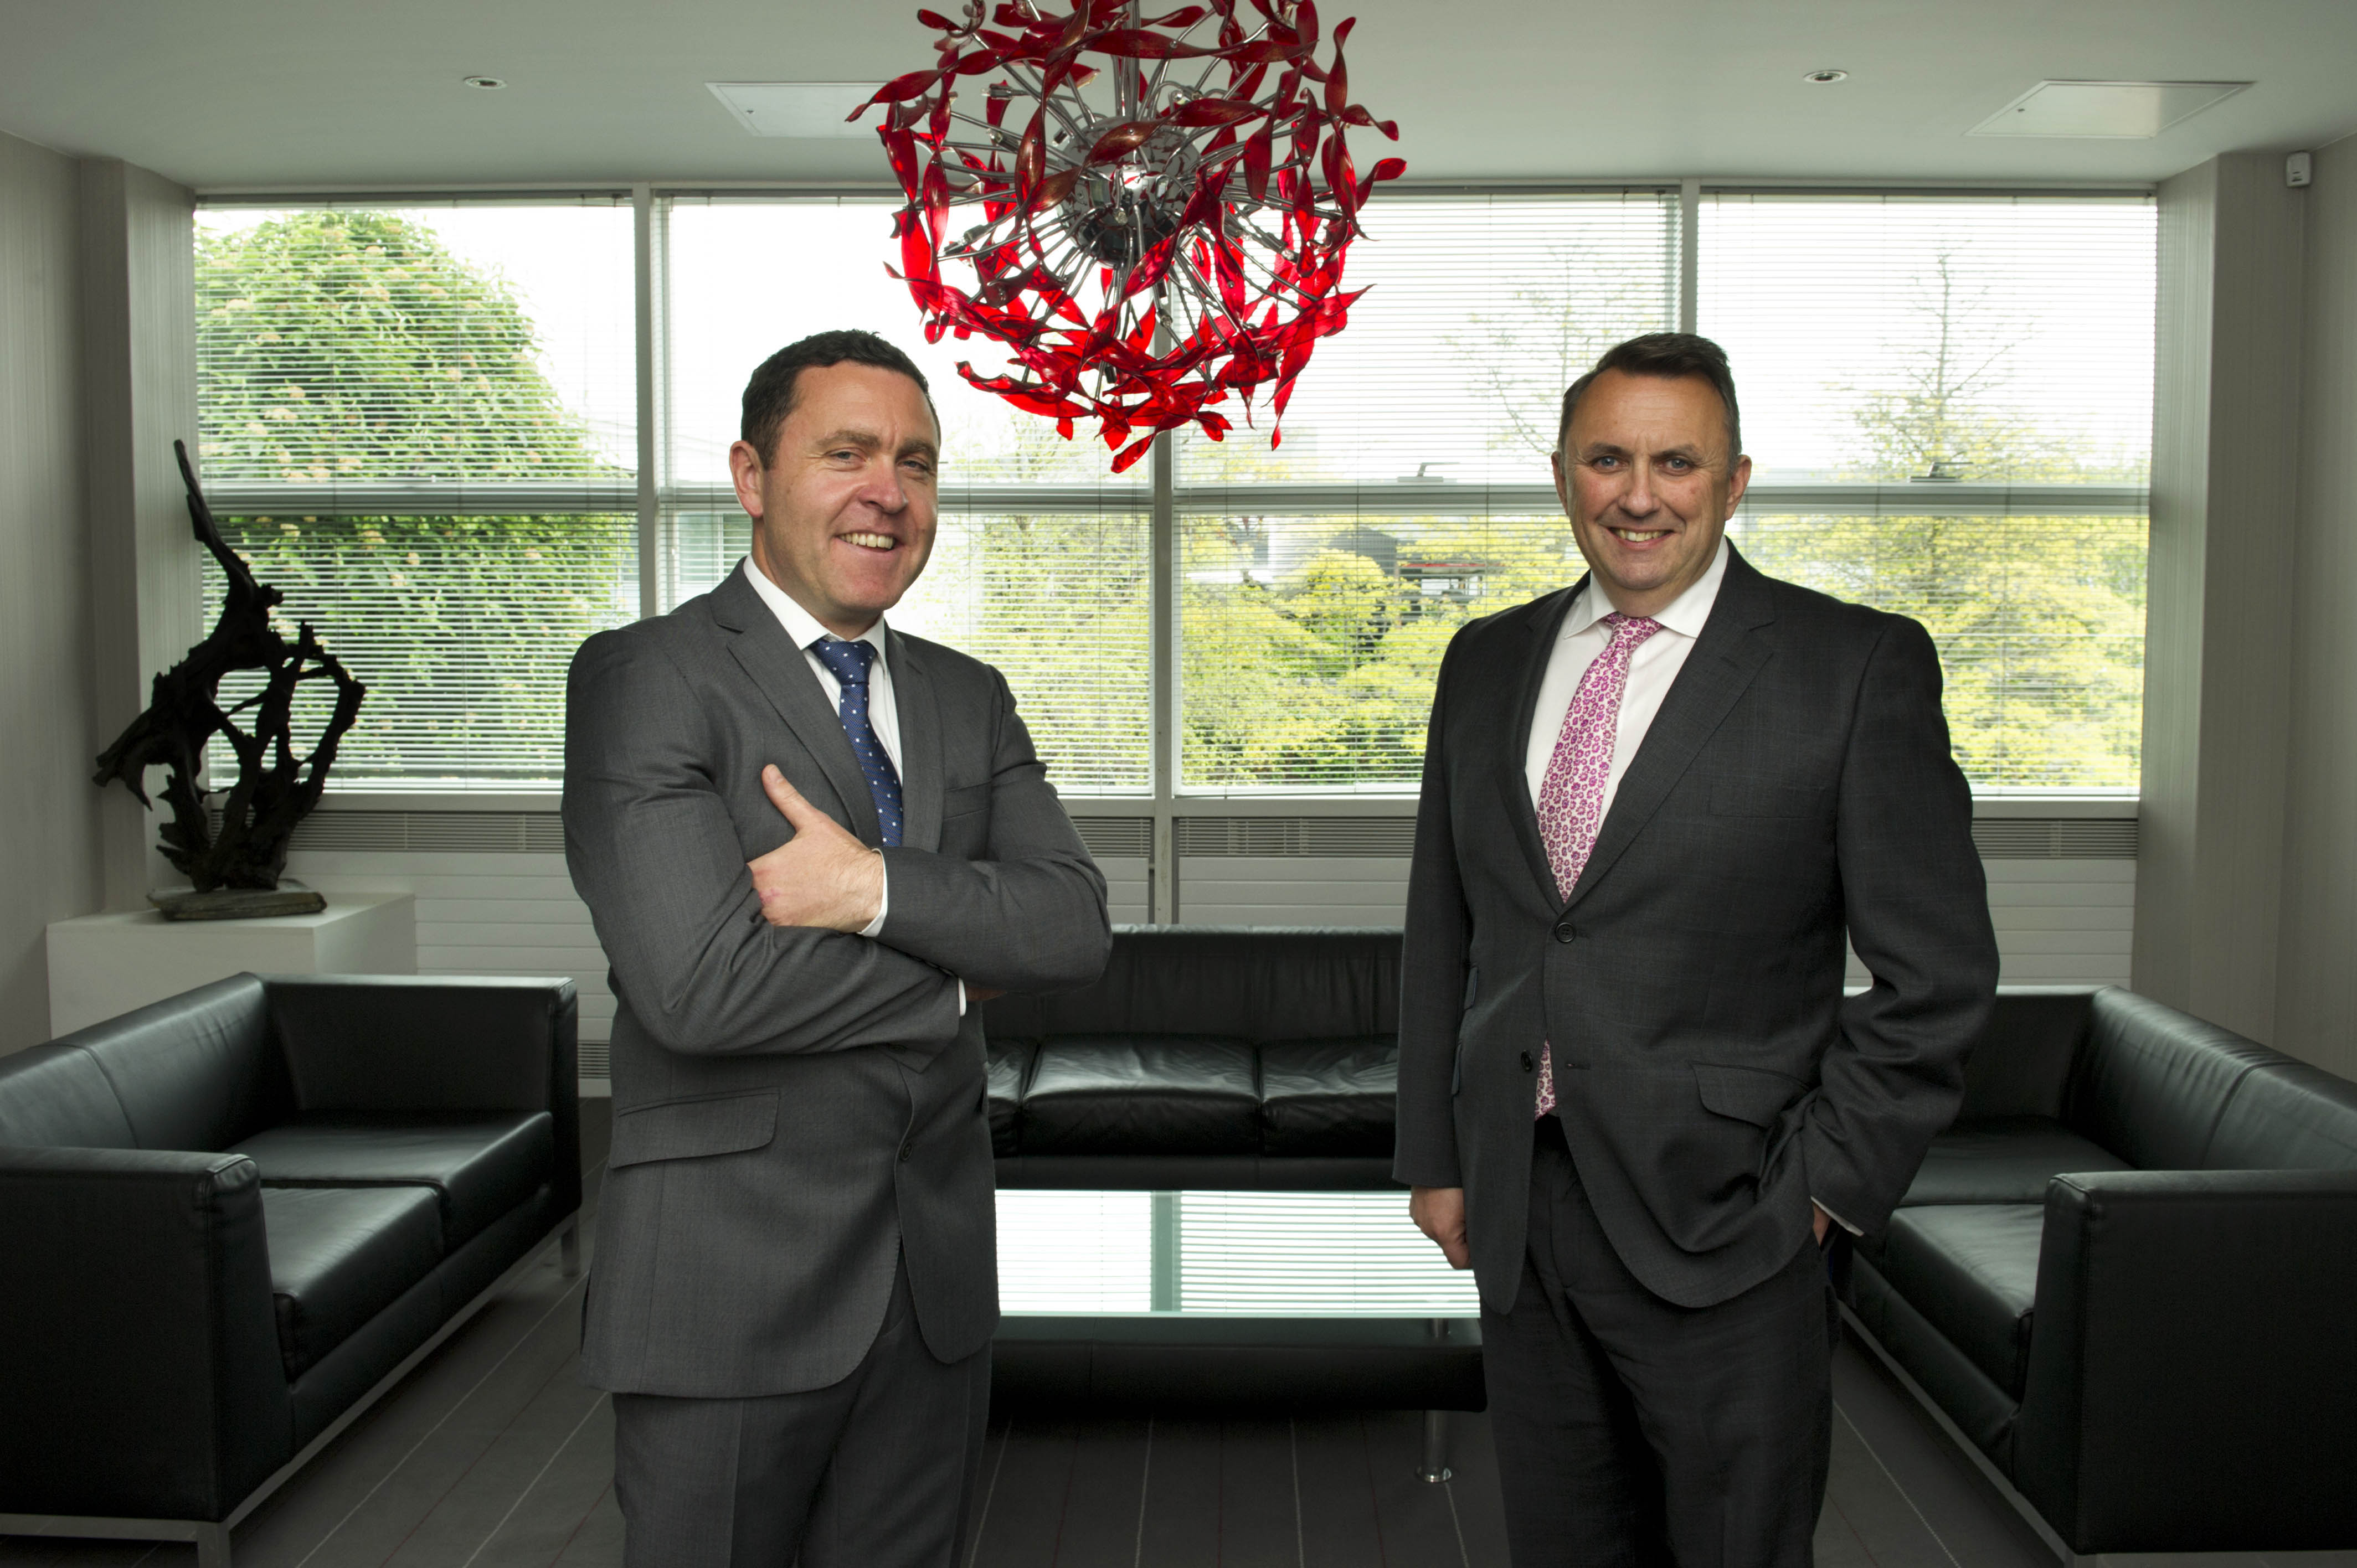 iSite founder Dave Muldoon & Chief Executive Officer John Purdy